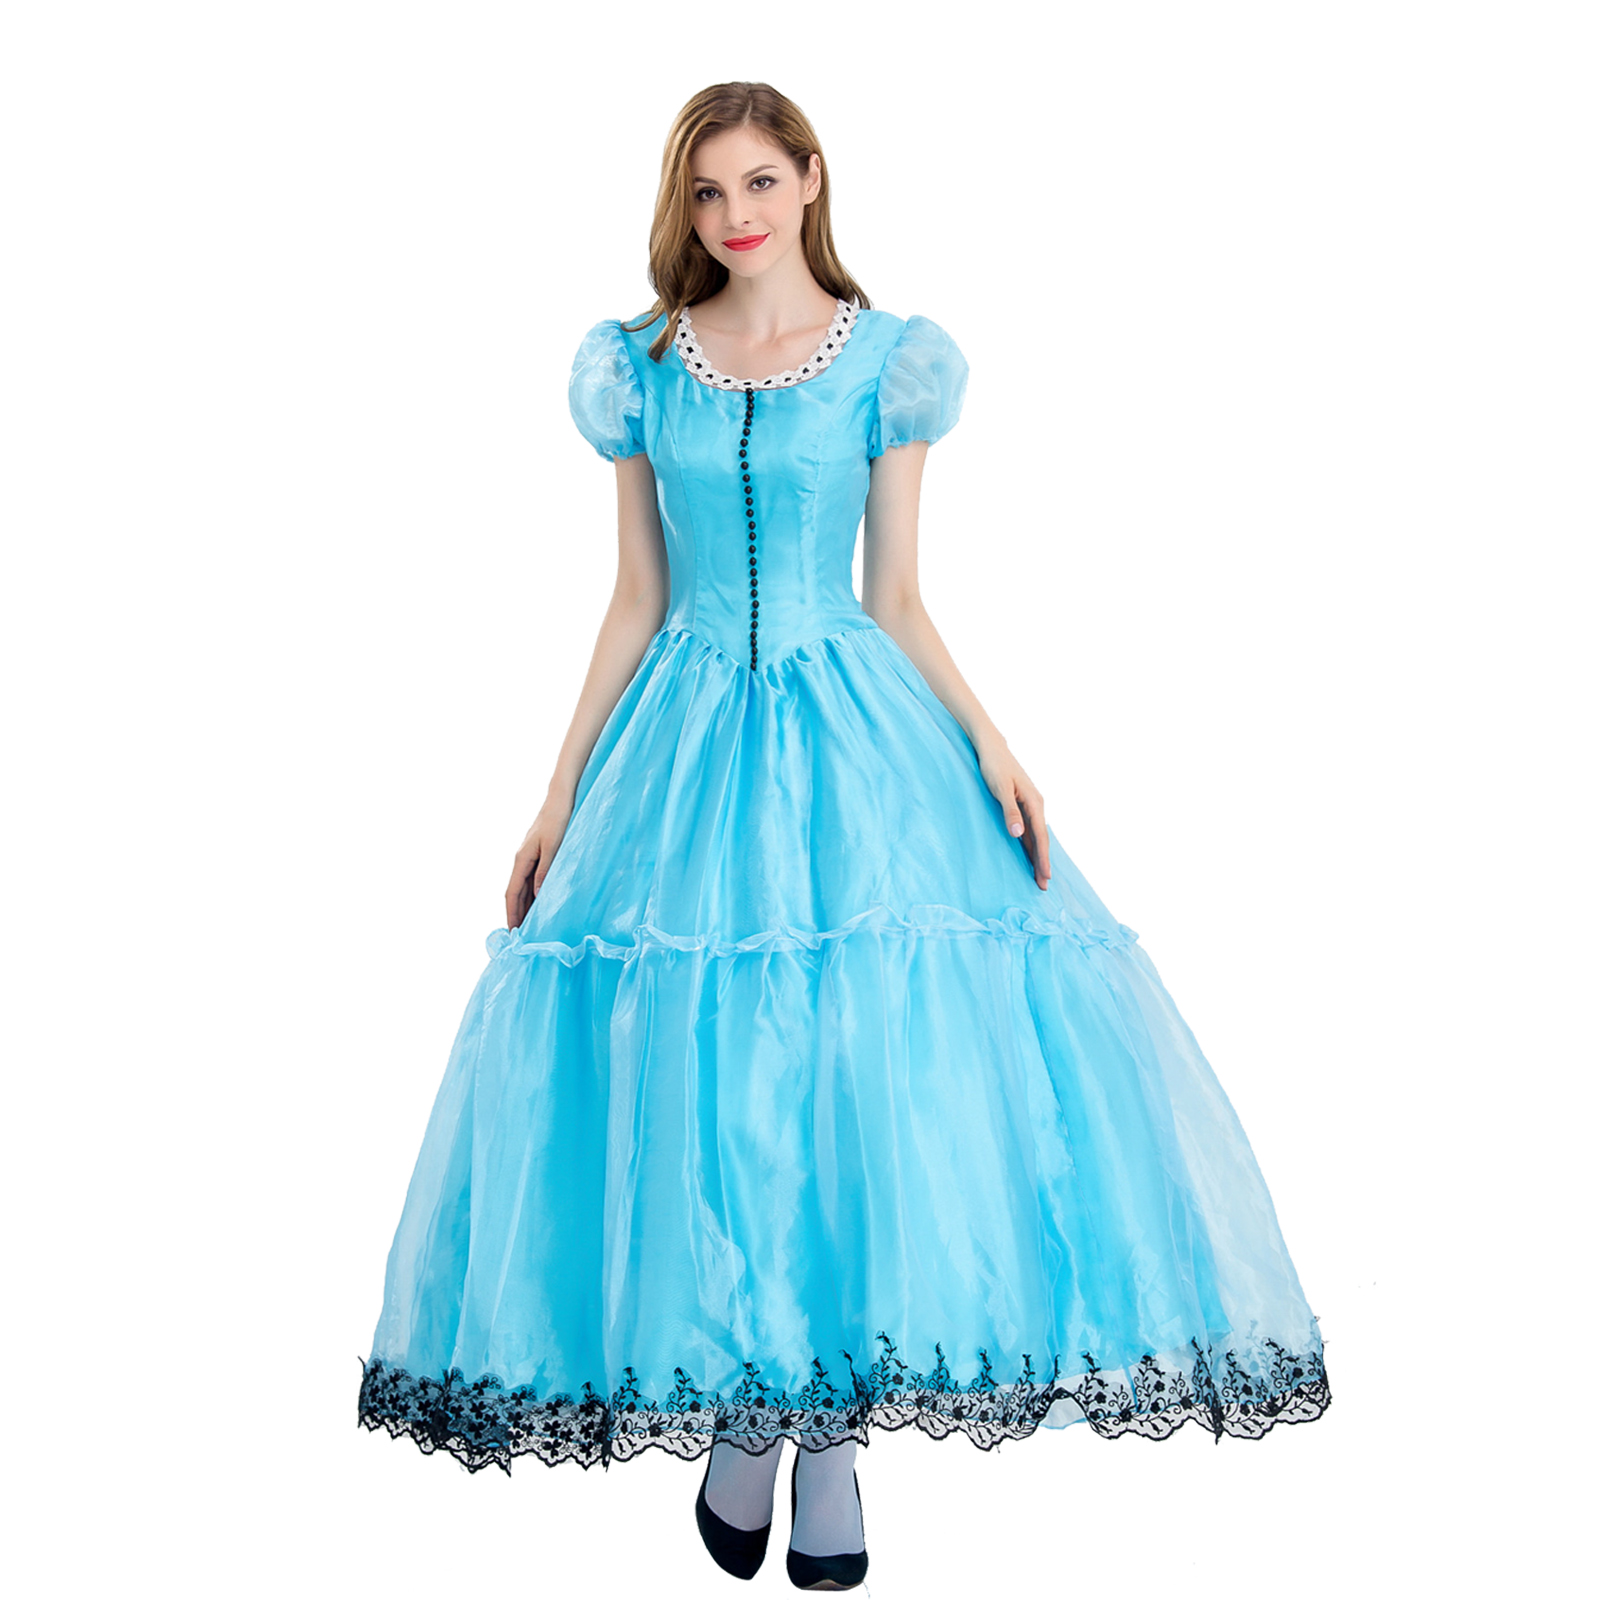 Outstanding Halloween Party Dresses Photo - Womens Dresses & Gowns ...